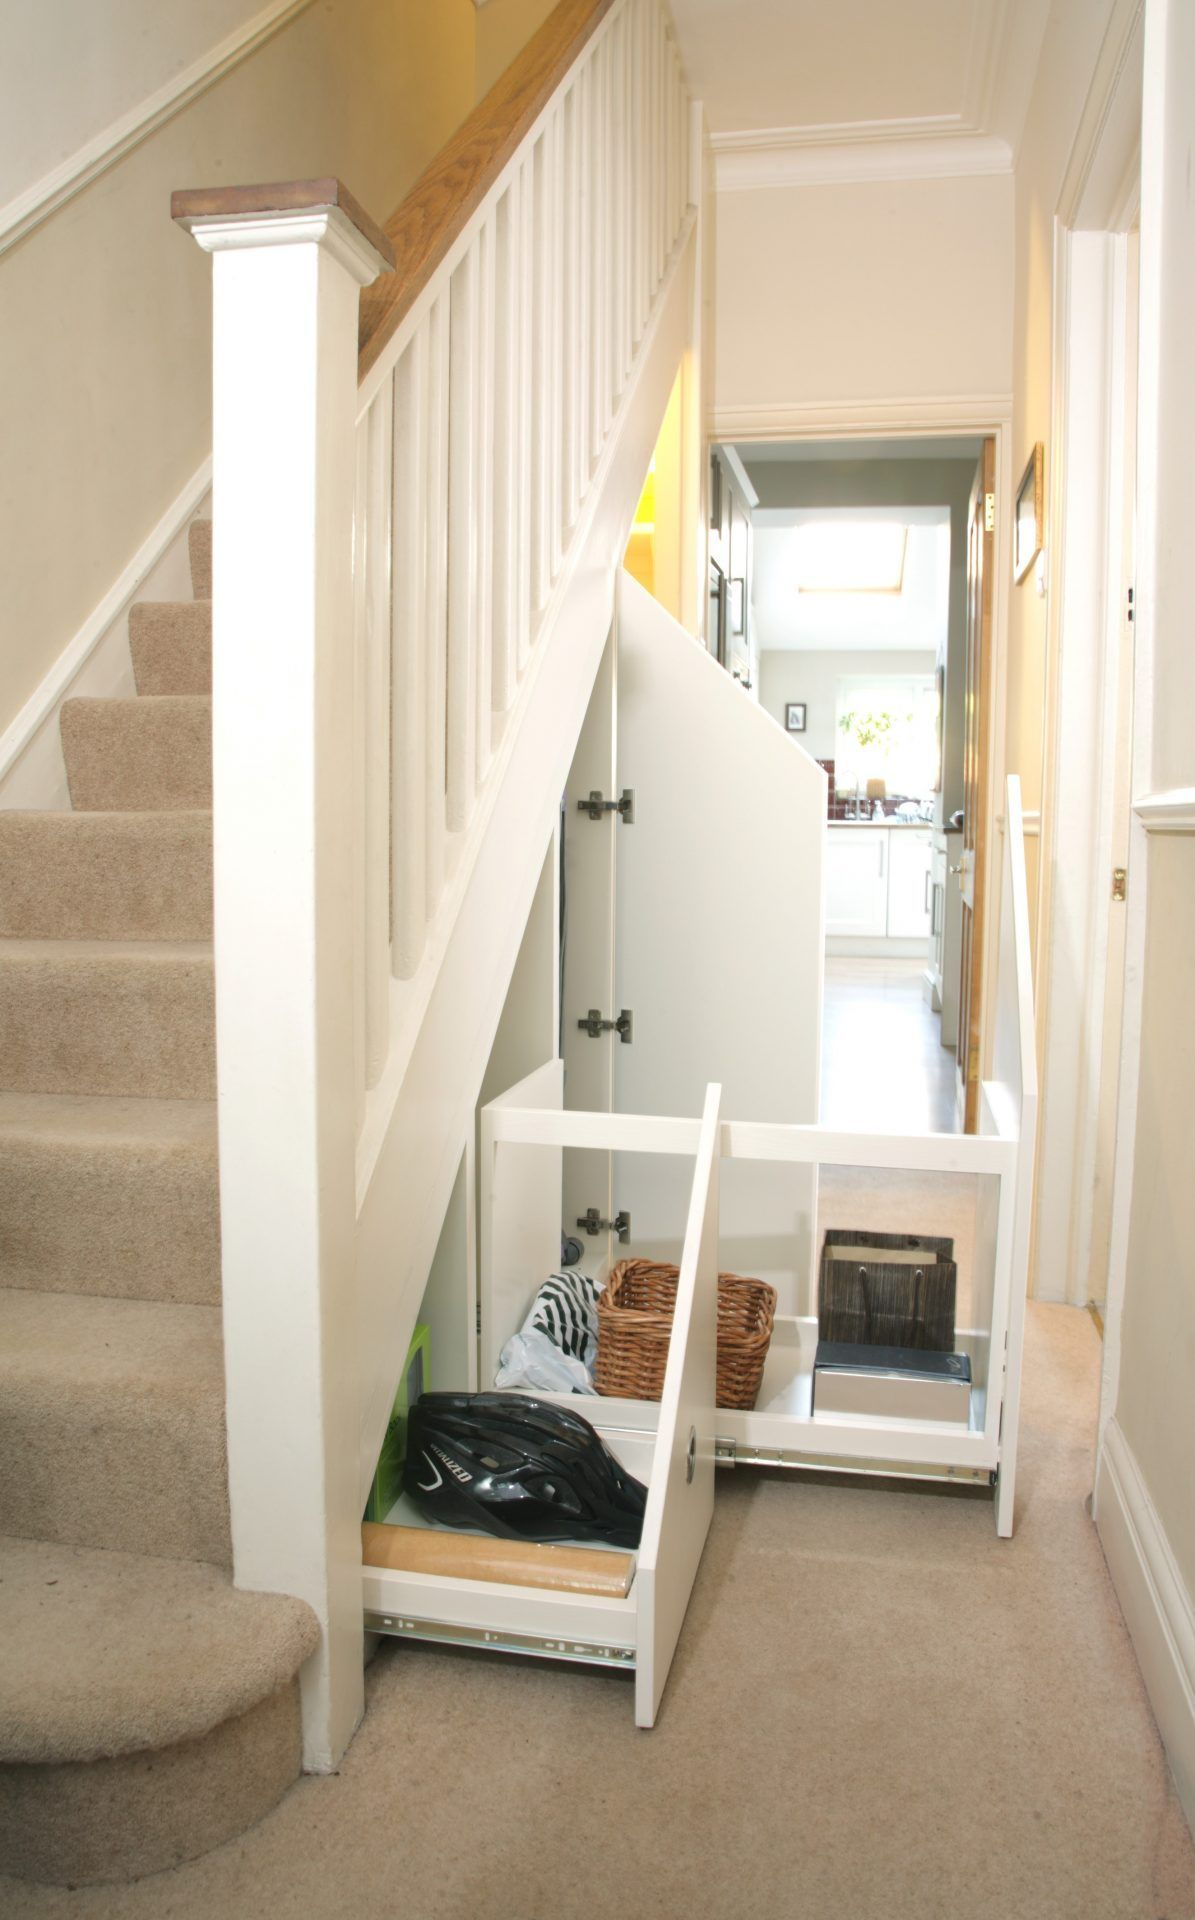 A range of uses for the under stairs area The customer needed a